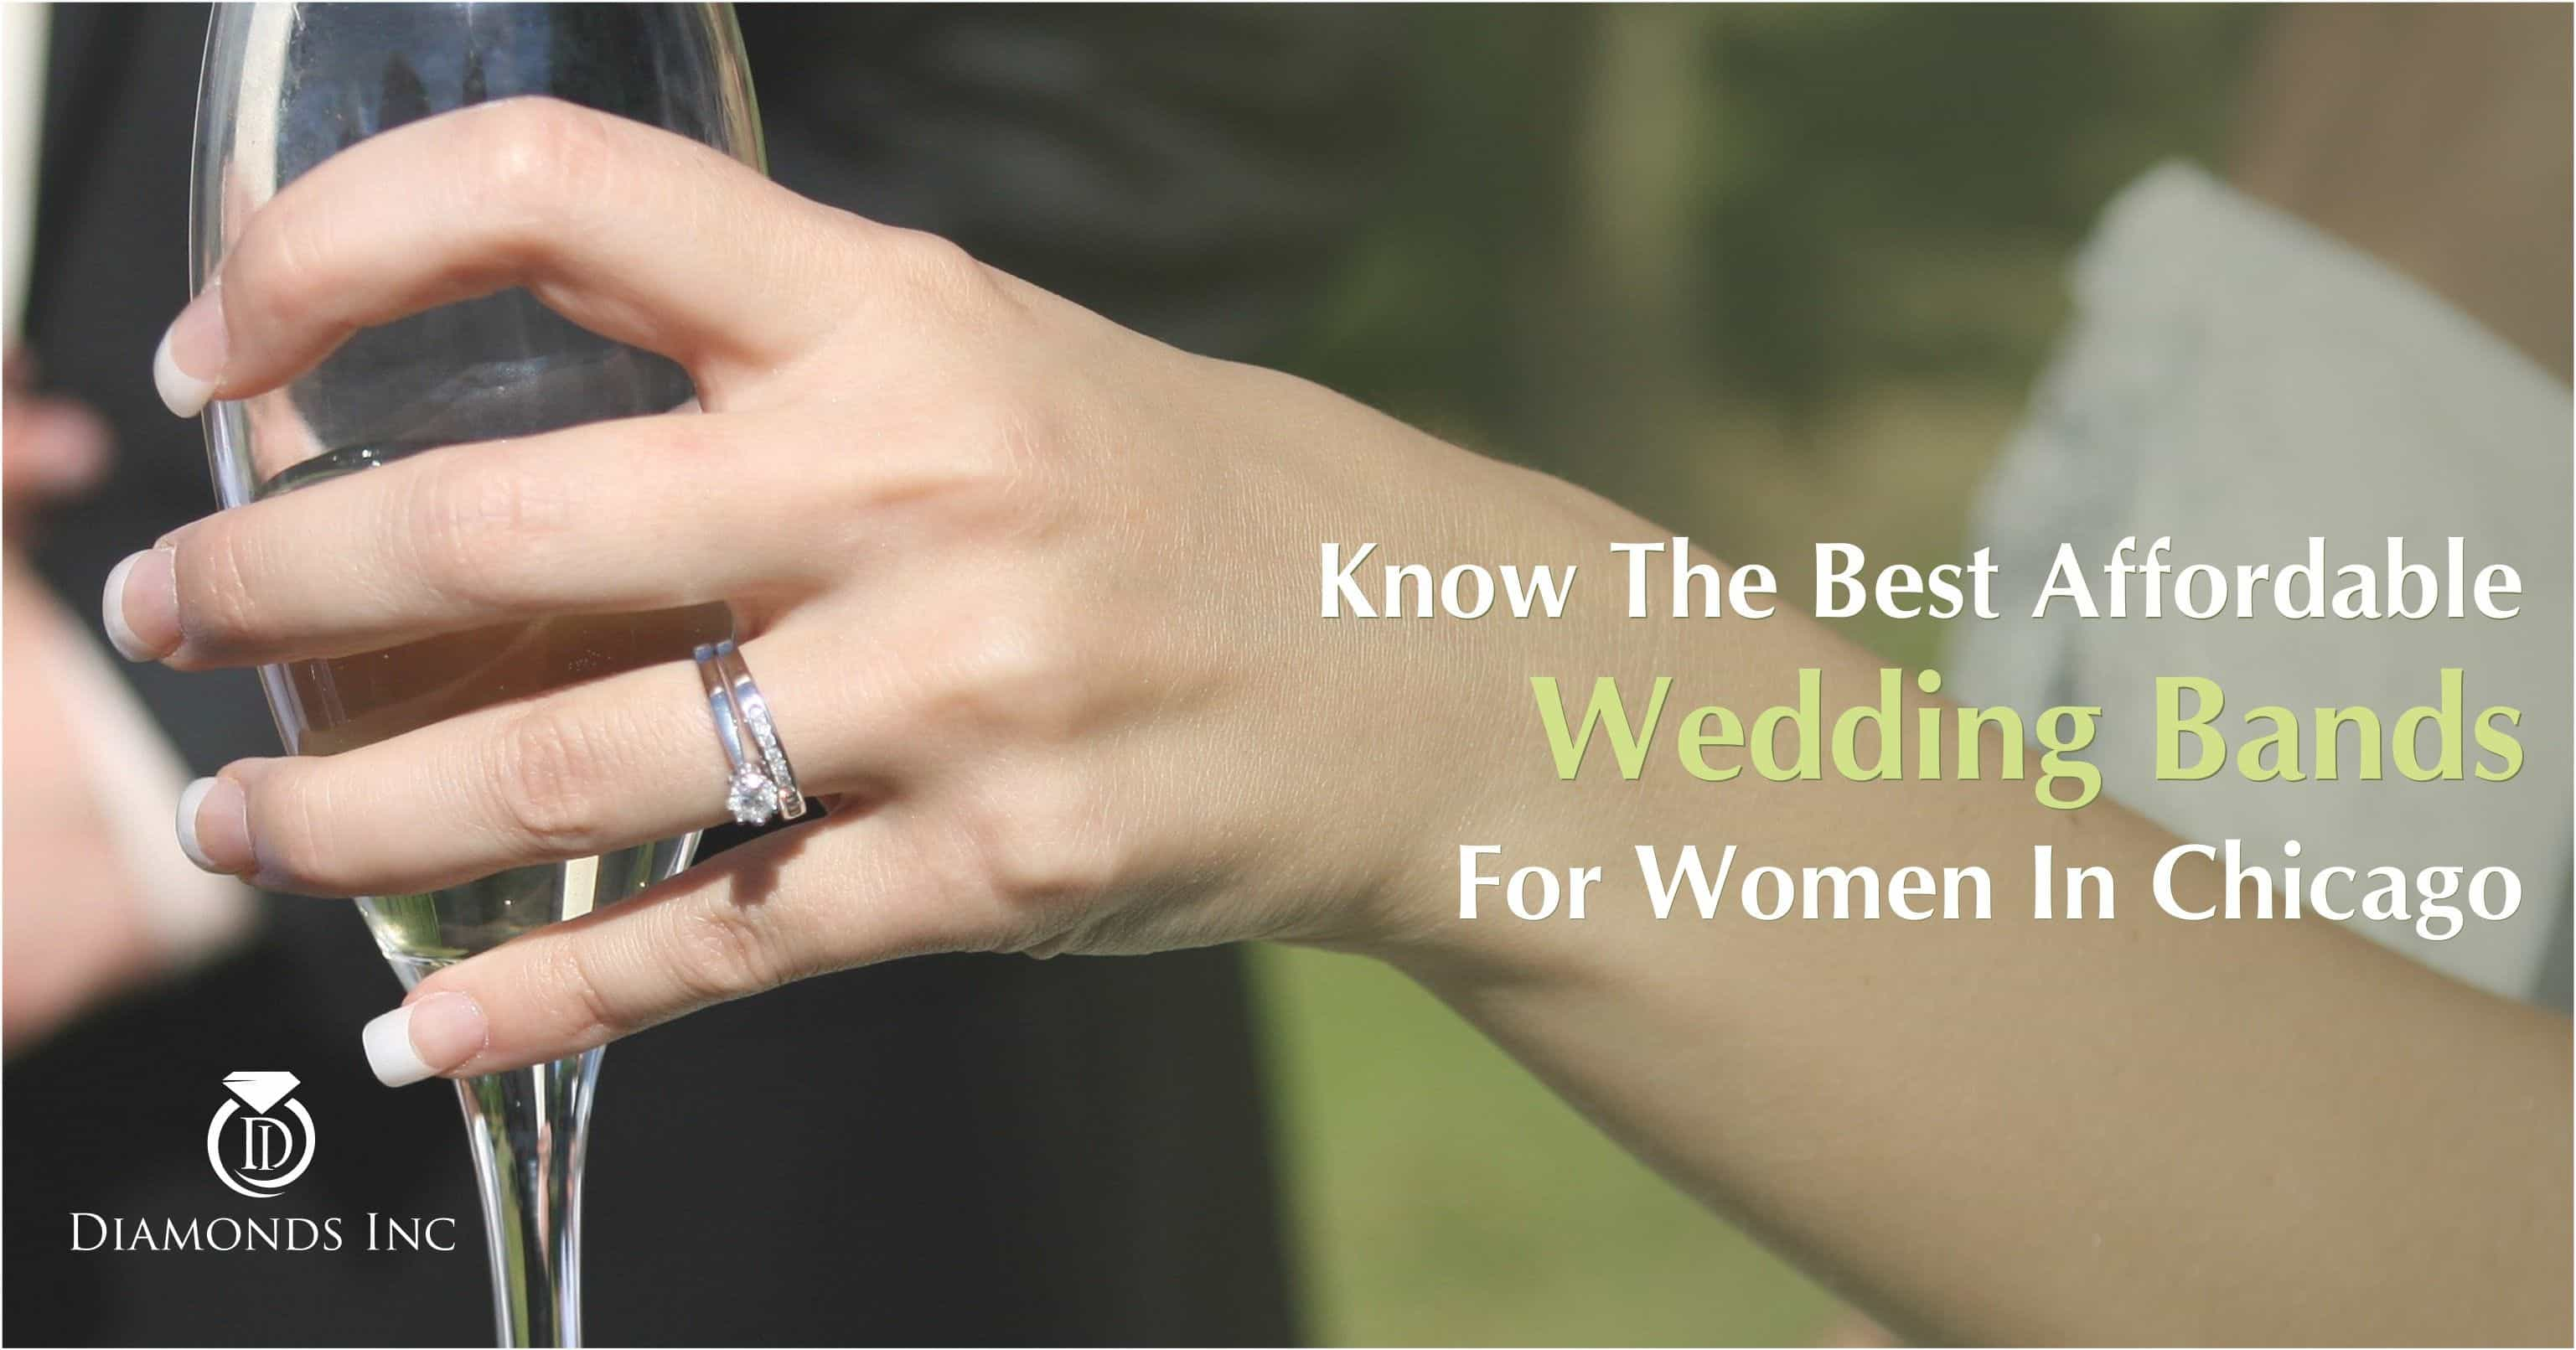 Know The Best Affordable Wedding Bands For Women In